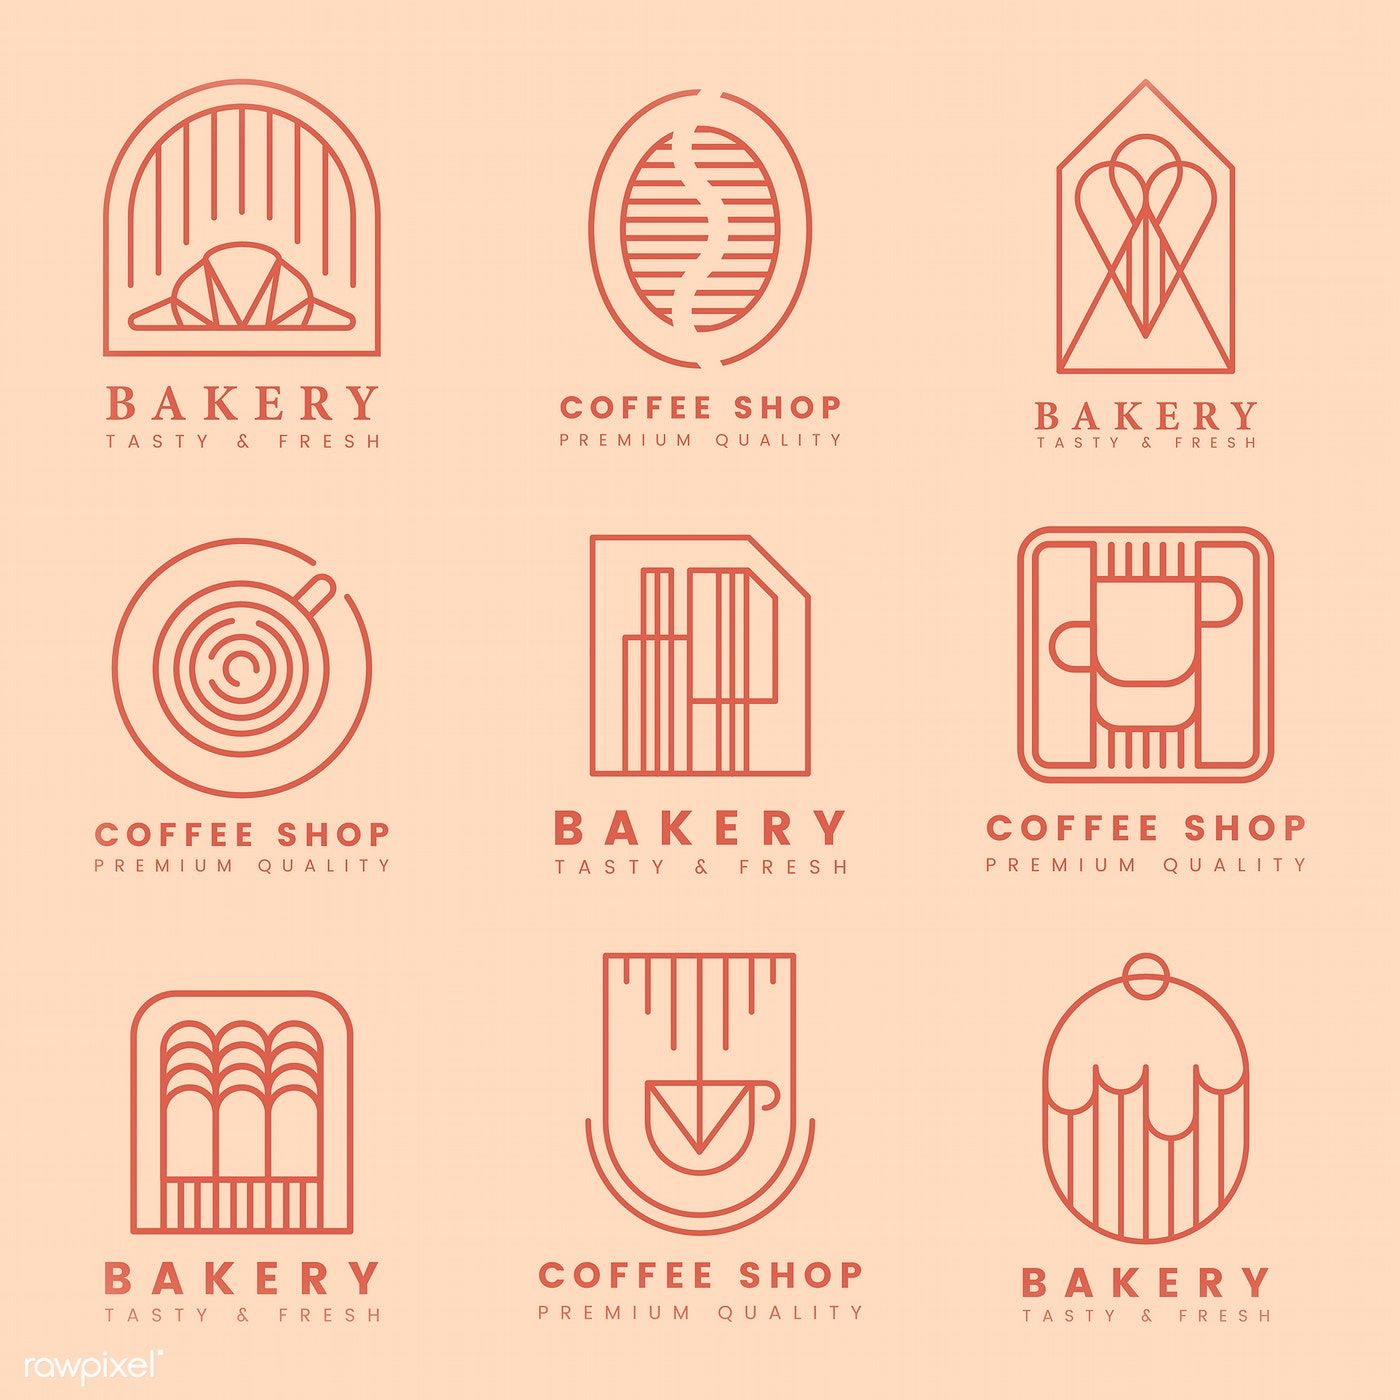 Coffee and pastry shop logo vector set | free image by